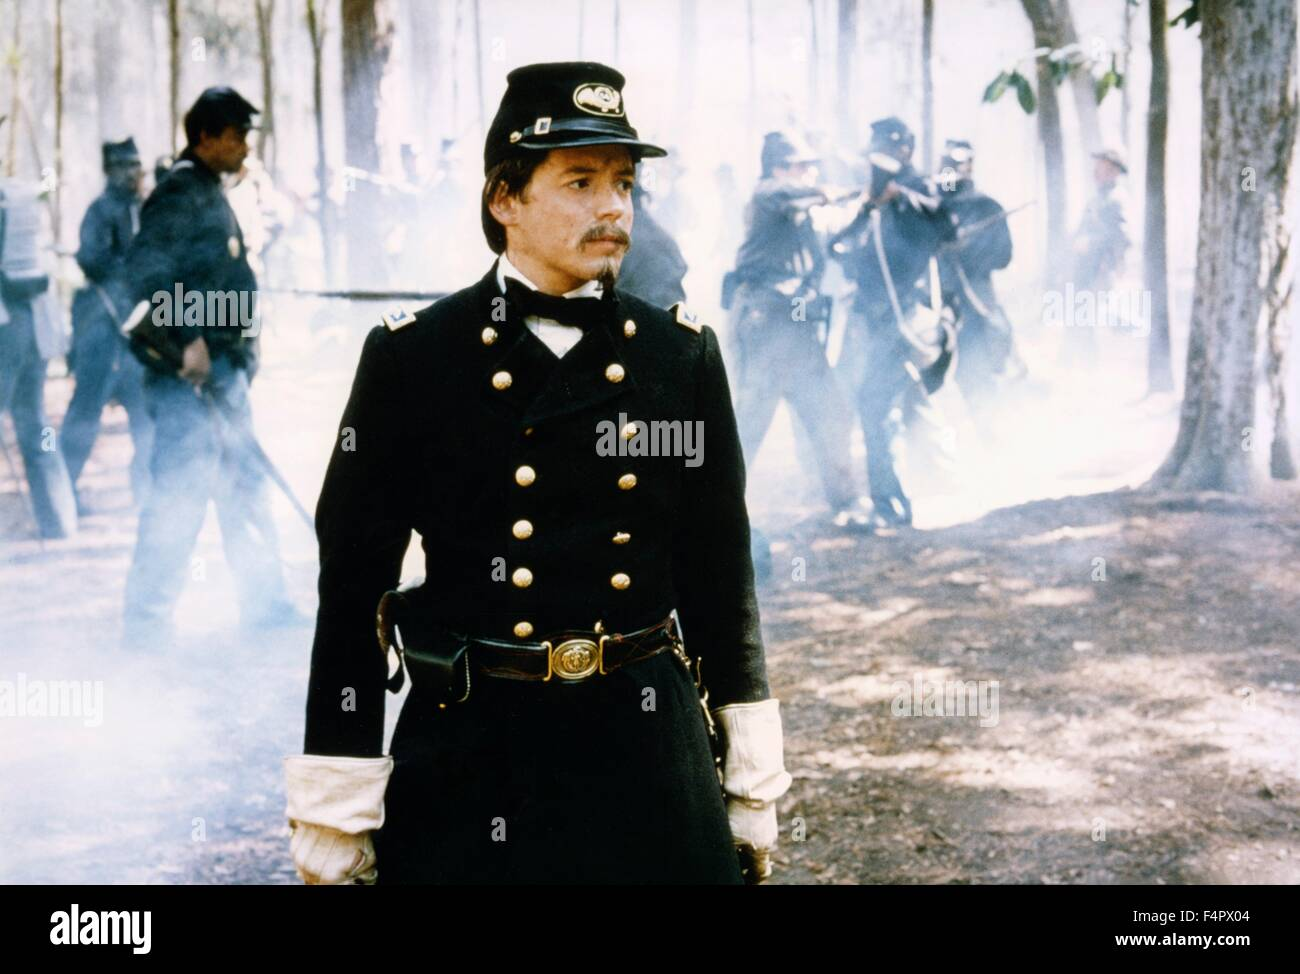 Matthew Broderick / Glory / 1989 directed by Edward Zwick [TriStar Pictures] - Stock Image